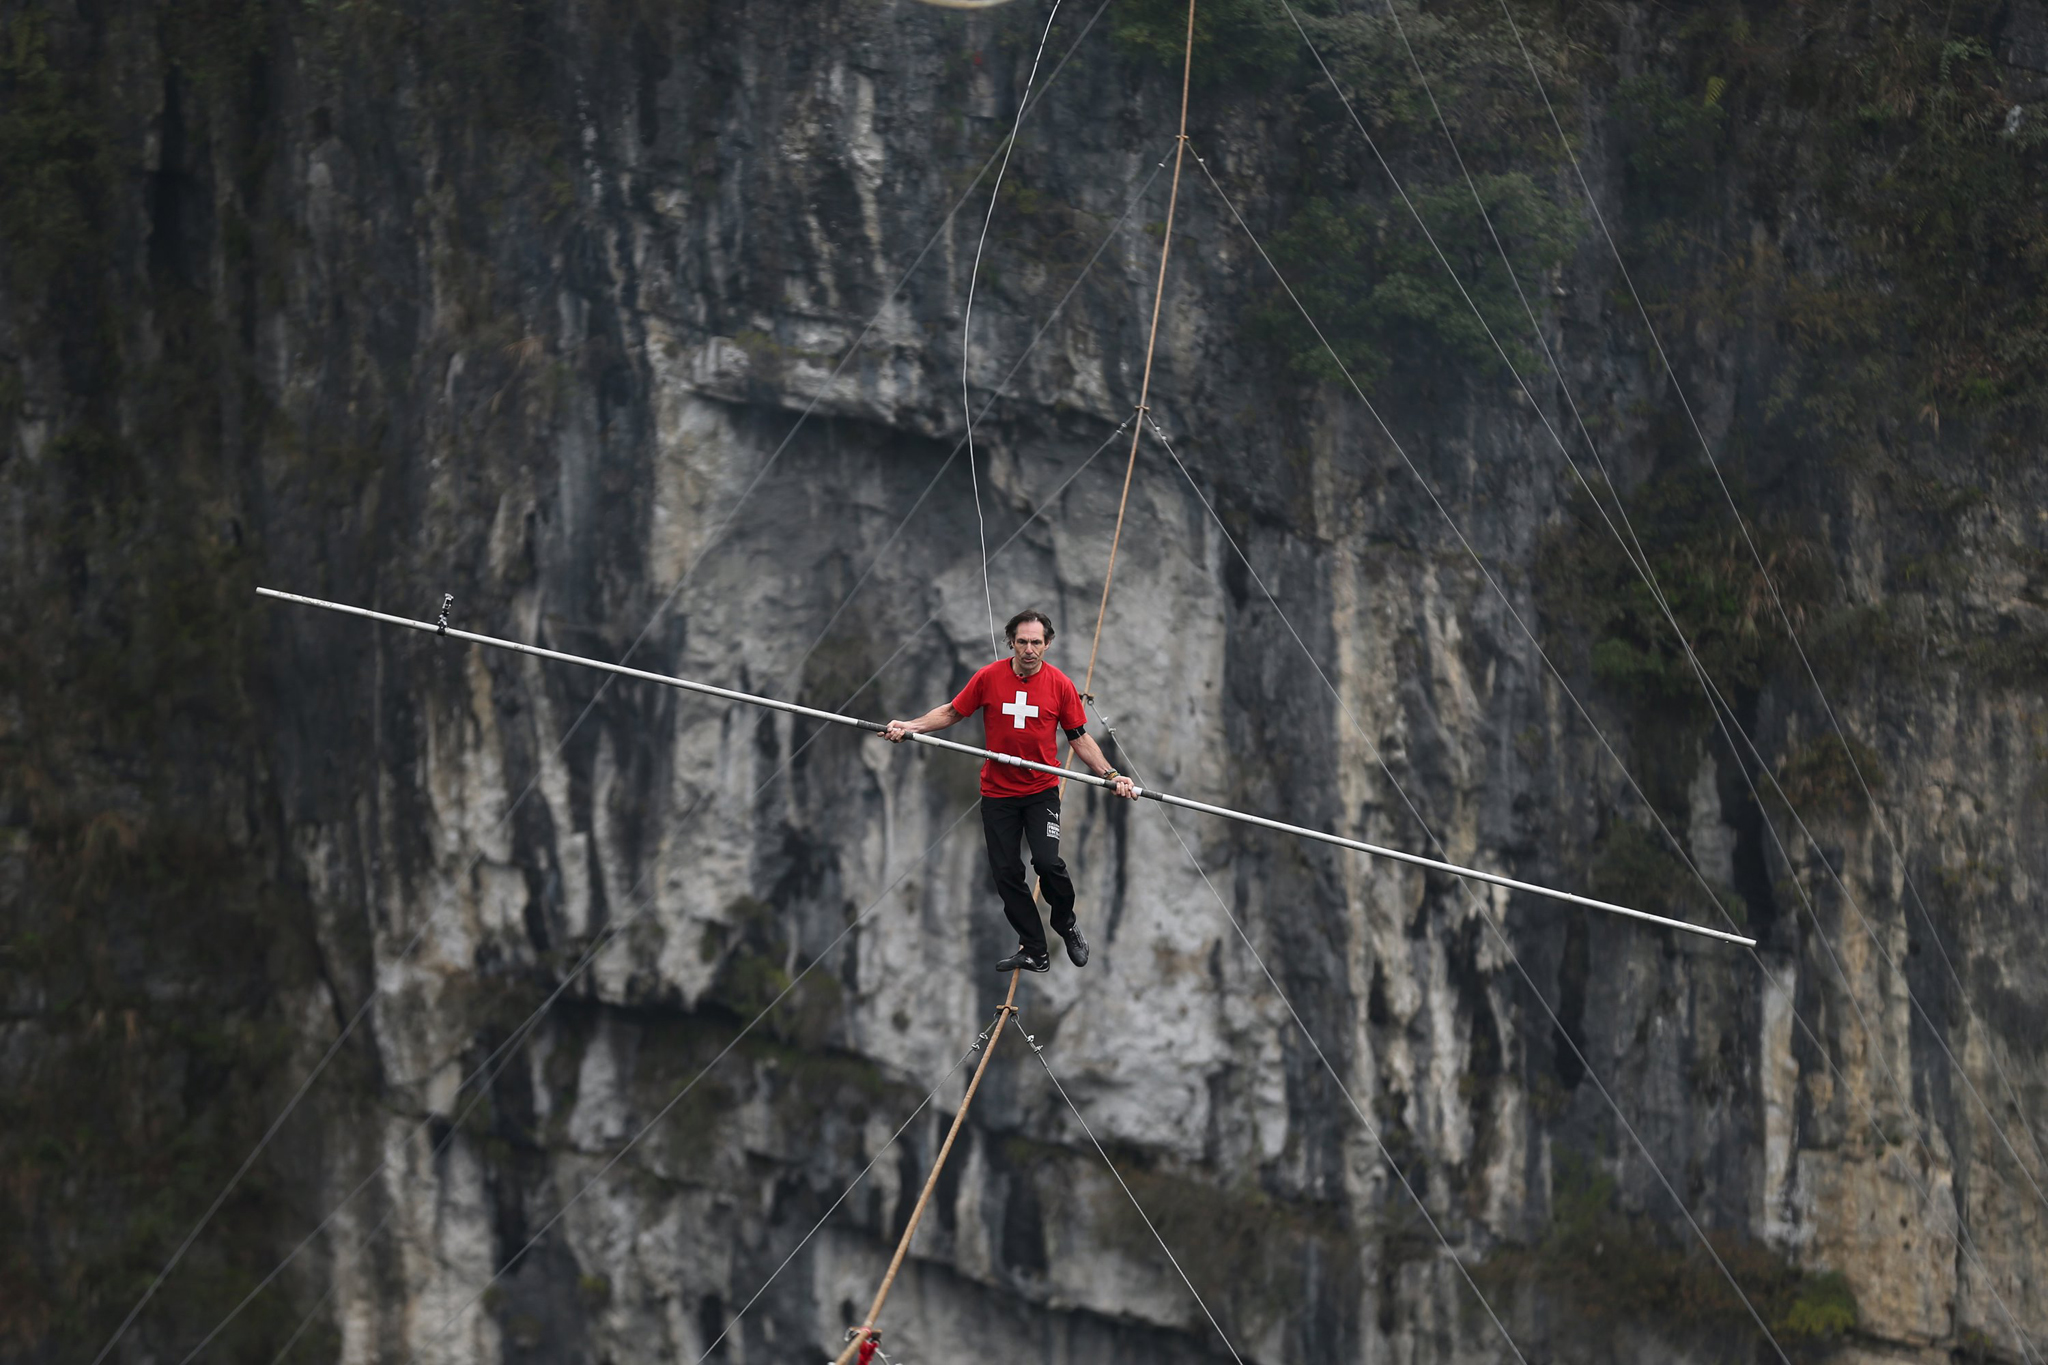 Freddy Nock of Switzerland walks on tightrope during a competition in Wulong county, Chongqing, China, March 30, 2016.